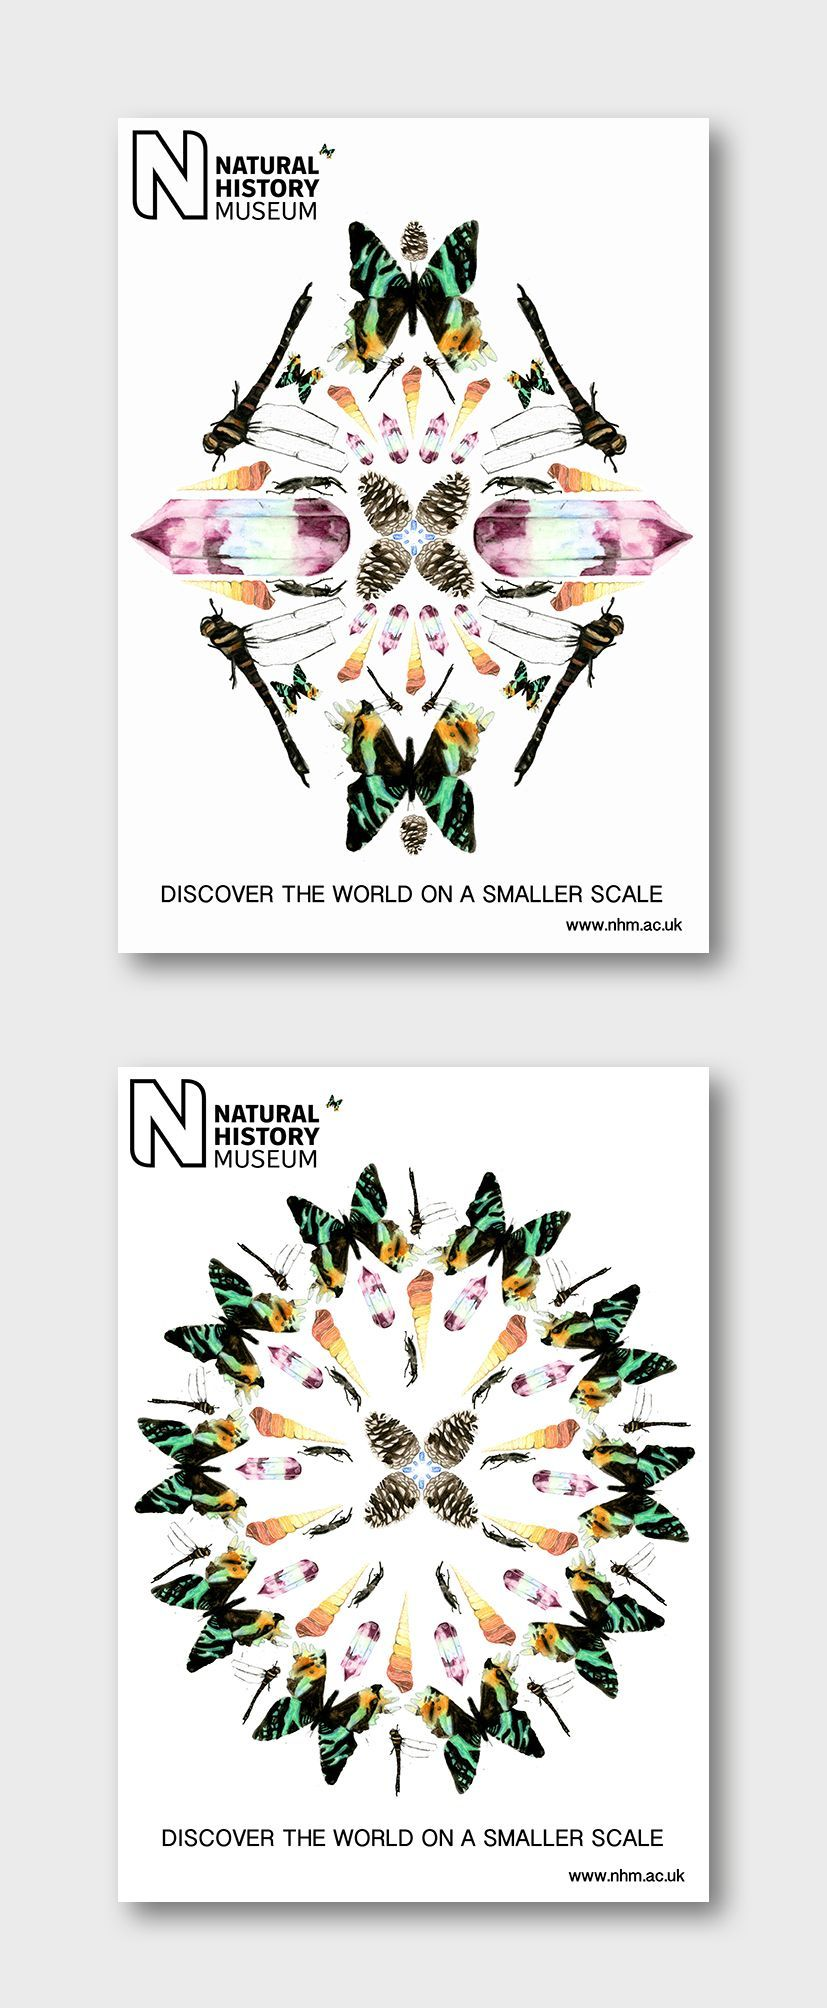 Natural History Museum Posters designed by AS student Alex S  Natural History Museum Posters designed by AS student Alex S